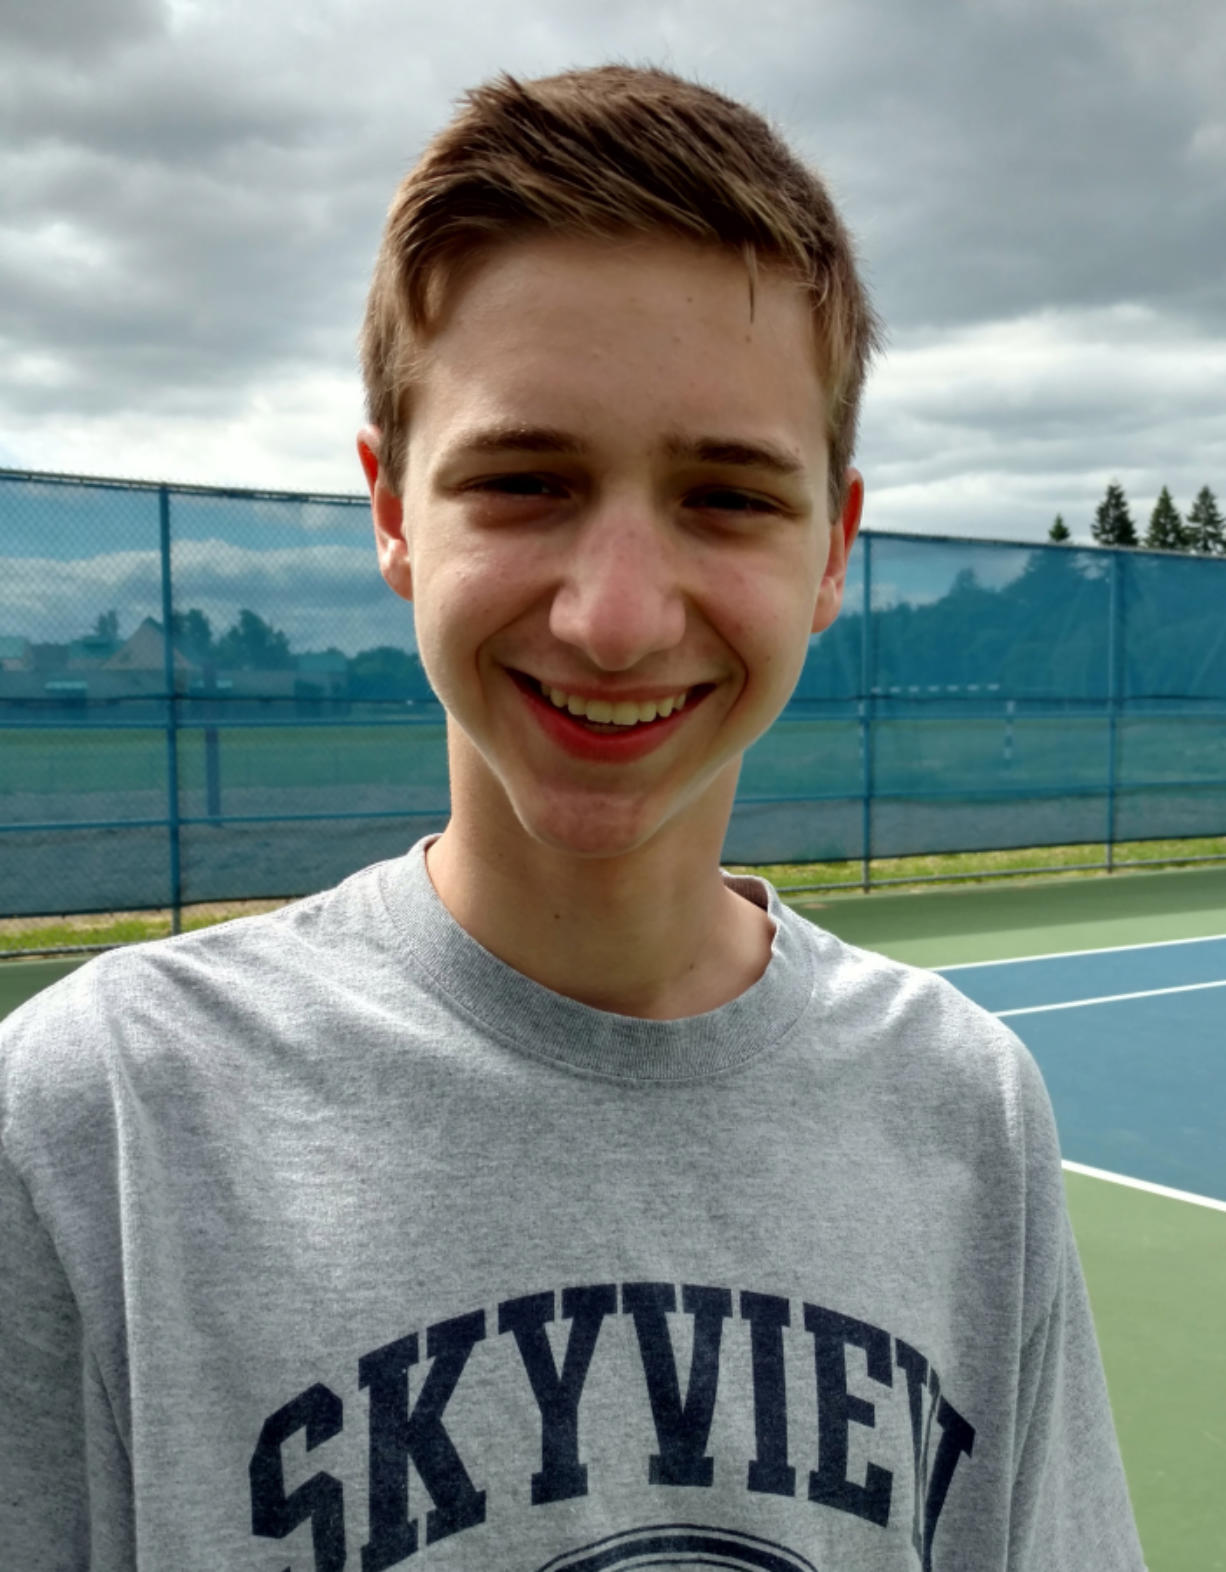 Skyview junior Andrew Kabacy won the WIAA Class 4A state singles title on Saturday, May 27, 2017 at Richland.